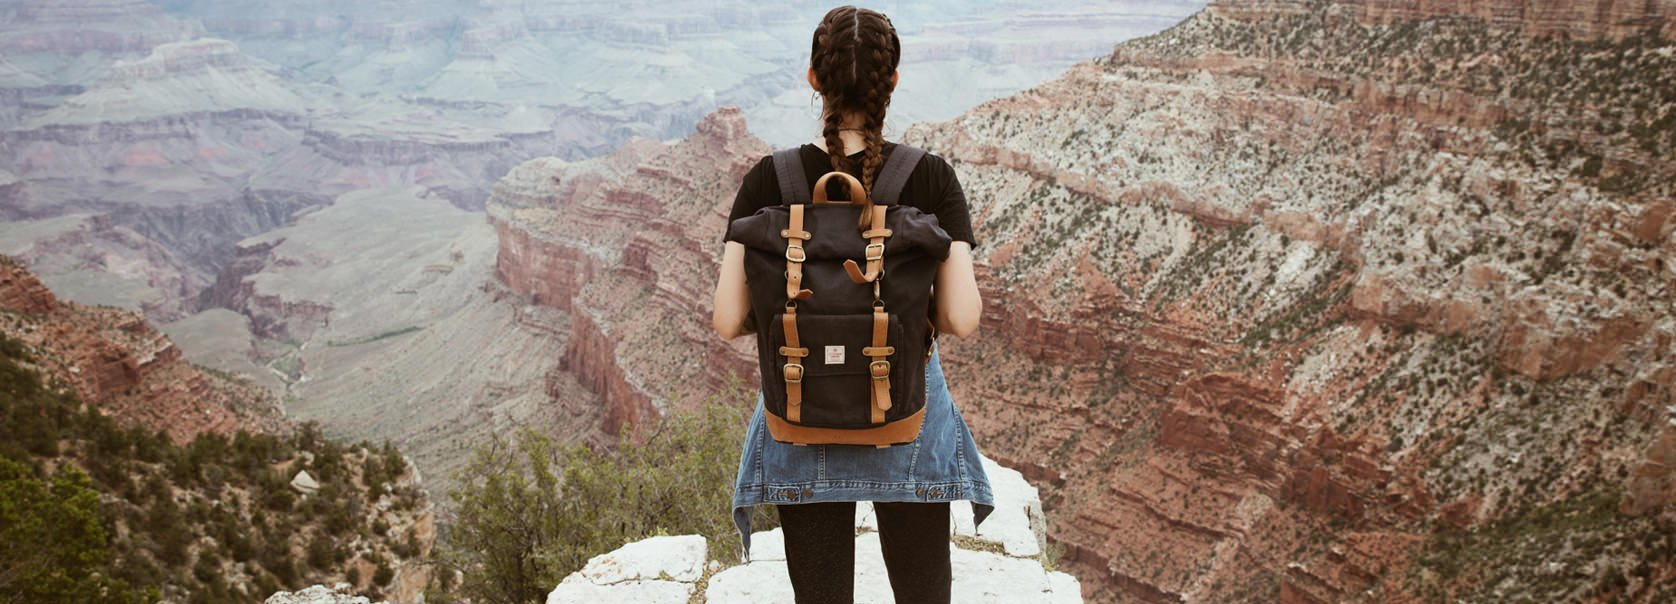 BOLSAS E MOCHILAS | BAGS AND BACKPACKS